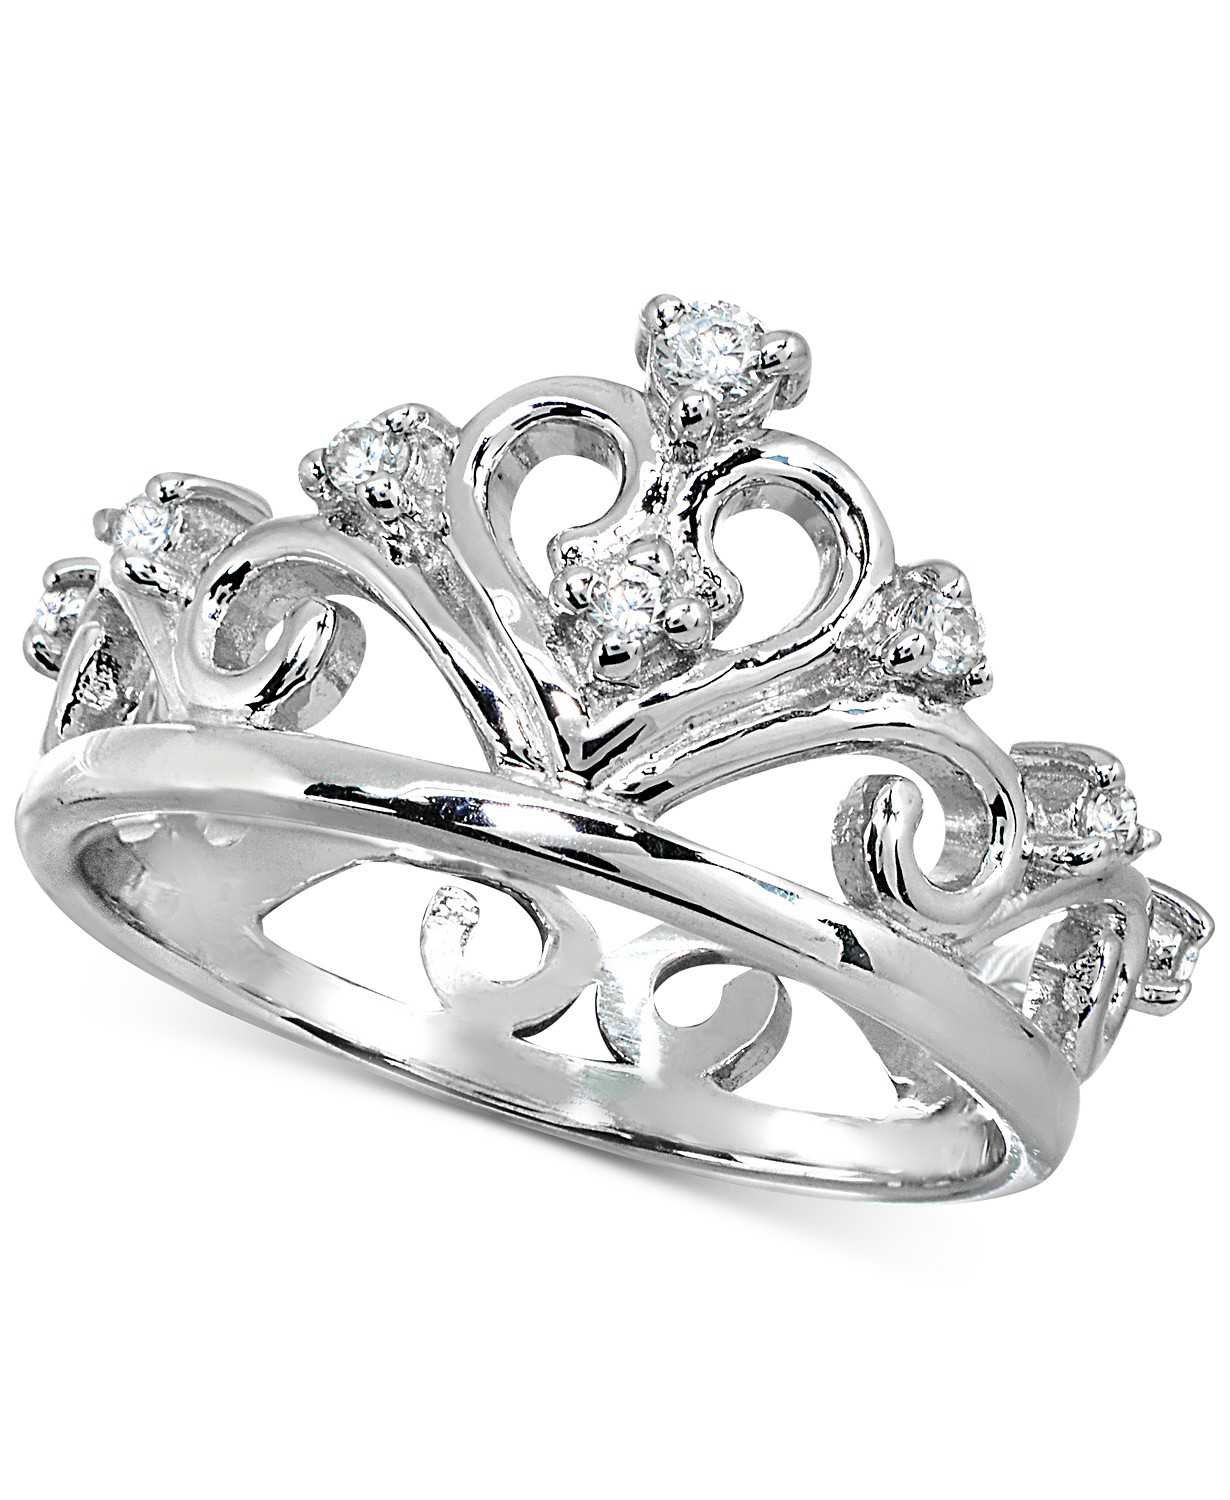 Giani Bernini Cubic Zirconia Stackable Tiara Ring in Sterling Silver, Created for Macy's - Fashion Jewelry - Jewelry & Watches - Macy's